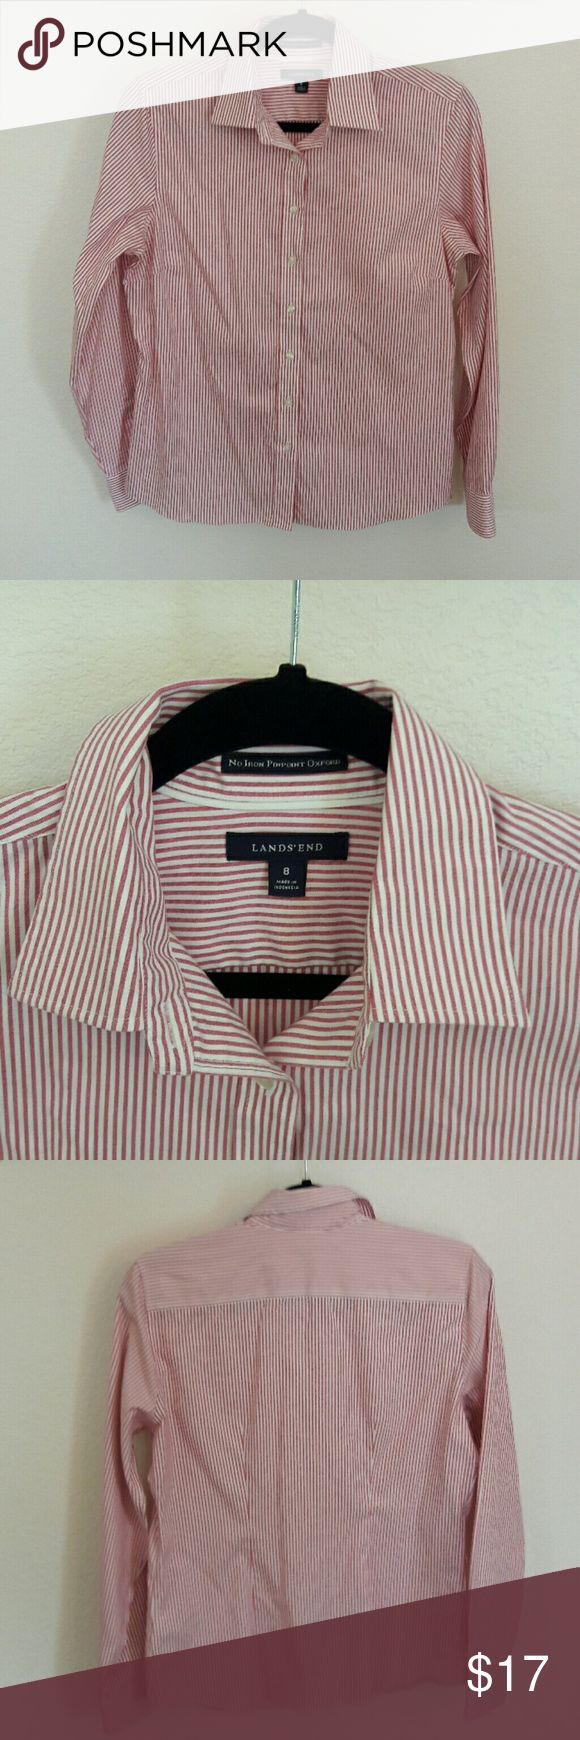 """Women's Lands' End button up shirt Women's red and white striped button up shirt by Lands' End in great condition. This is one of their """"No iron pin point oxford"""" shirts. It is 100% cotton. All of the buttons are there. No stains, tears or rips. Please feel free to ask any questions as all sales are final. From  a smoke free home. Lands' End Tops Button Down Shirts"""